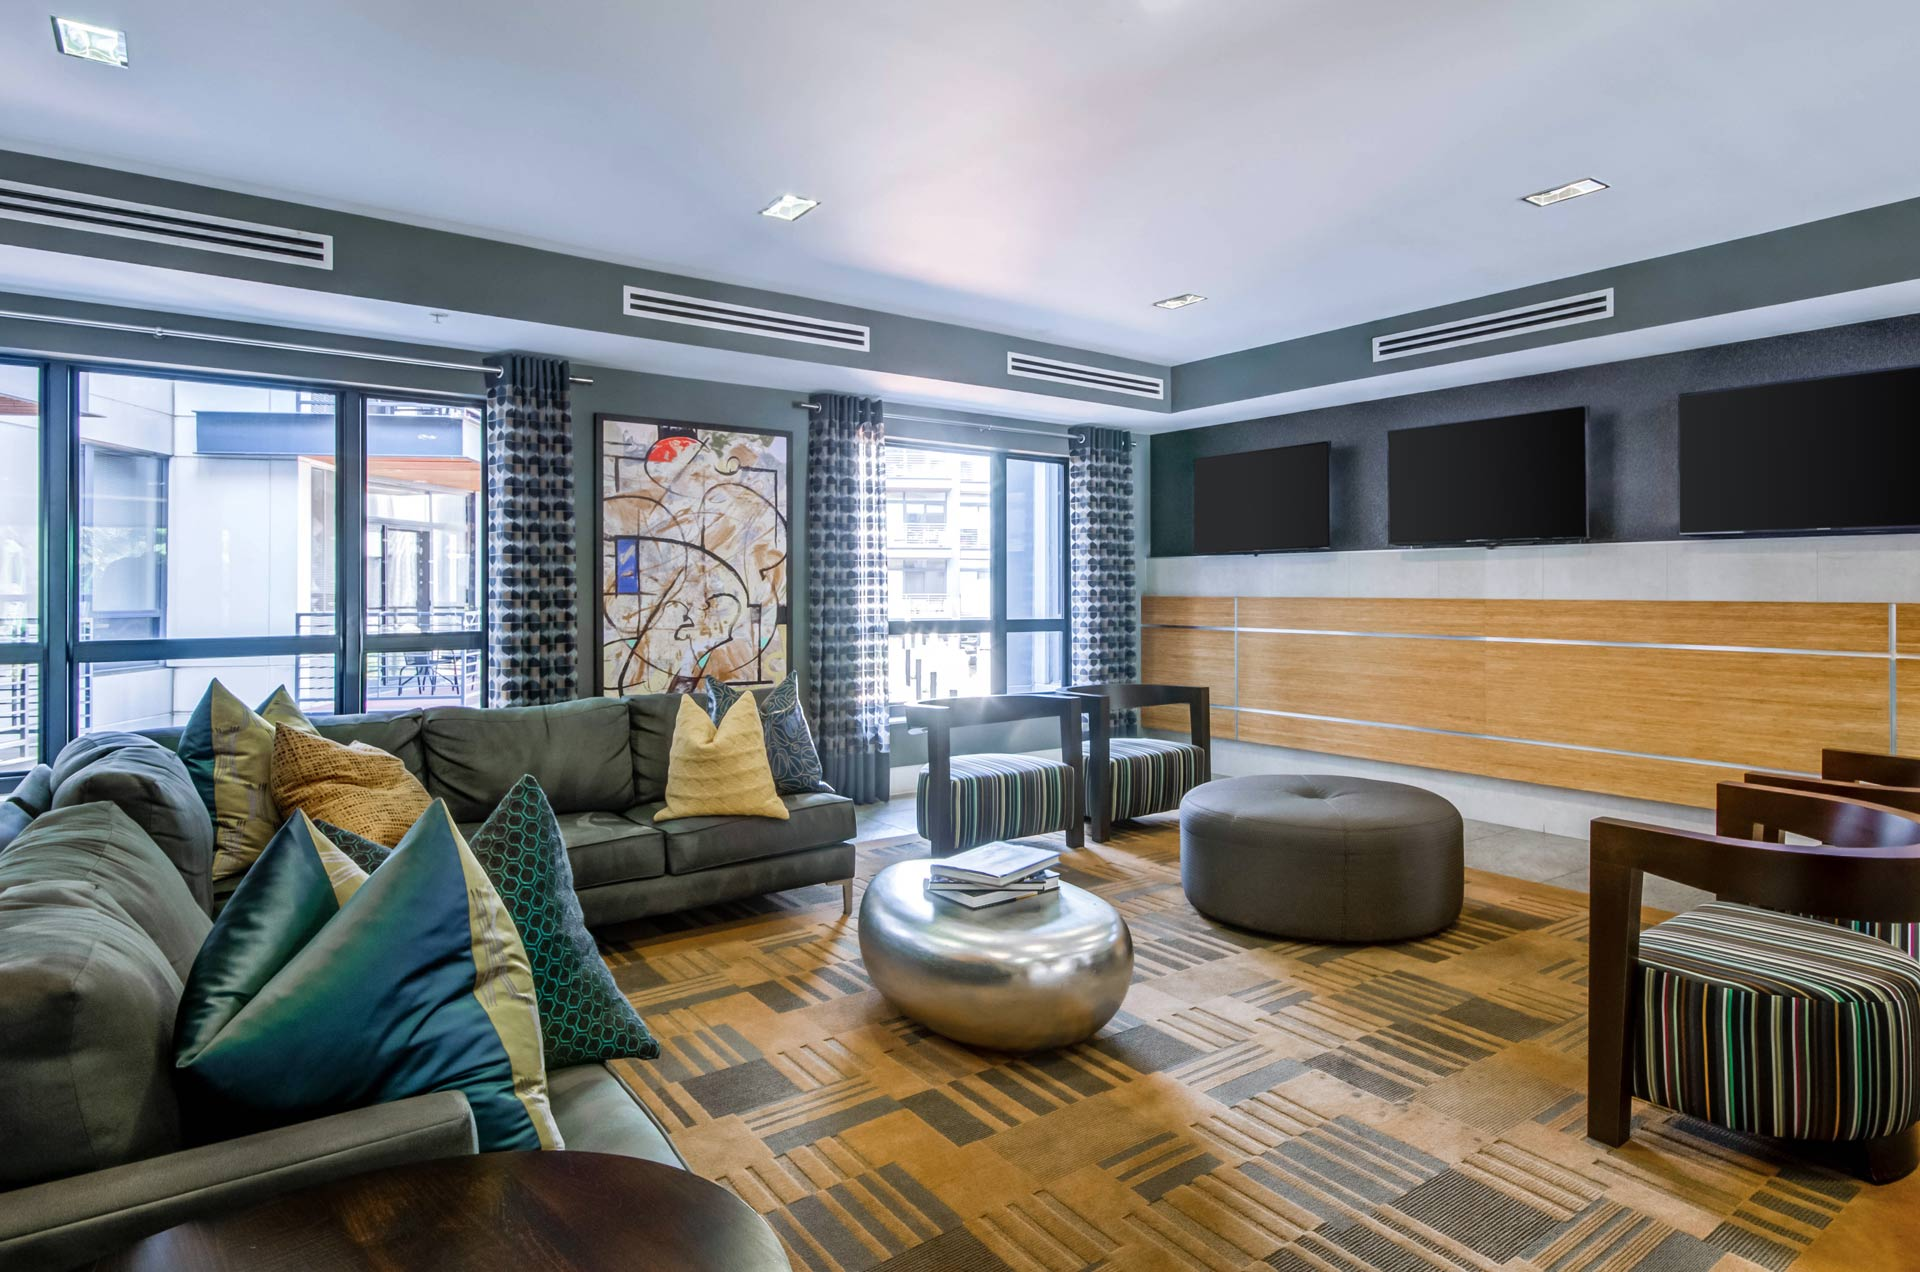 Entry lounge area with comfortable sofas, large pillows, and multiple TVs over a graphic rug, with bright light filtering in from the windows behind